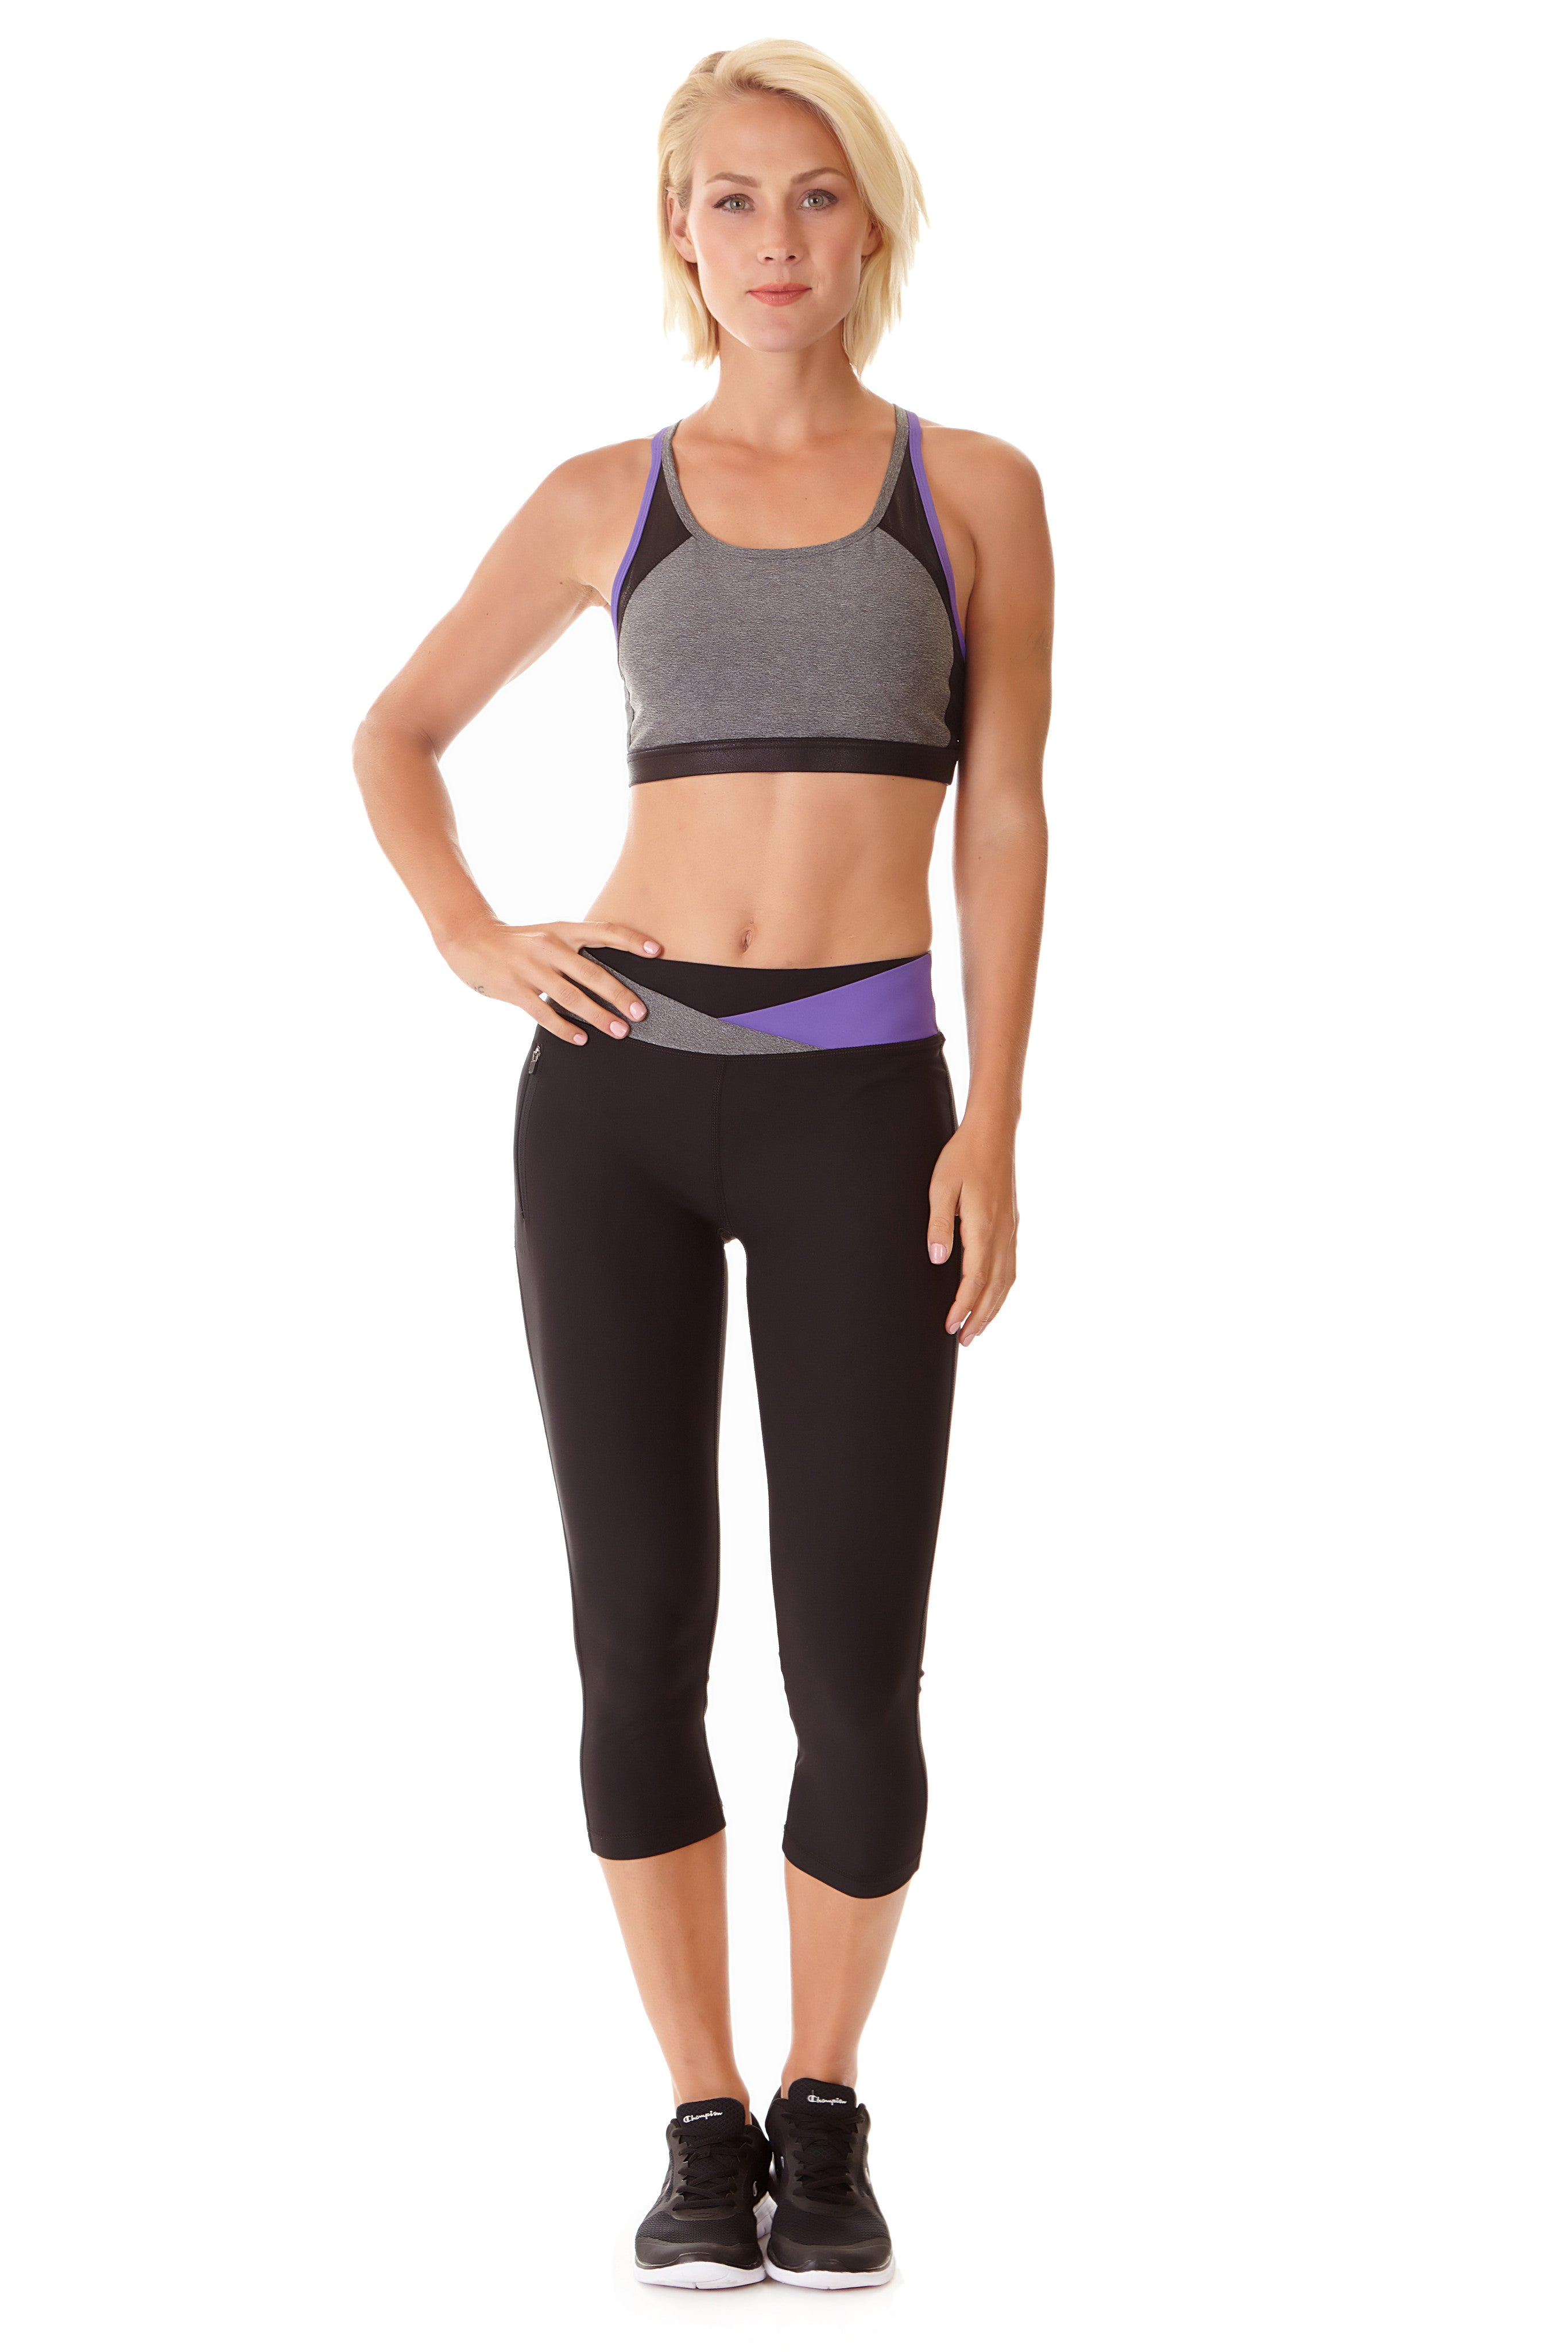 Ki Pro Women's Performance Capri - PURPLE